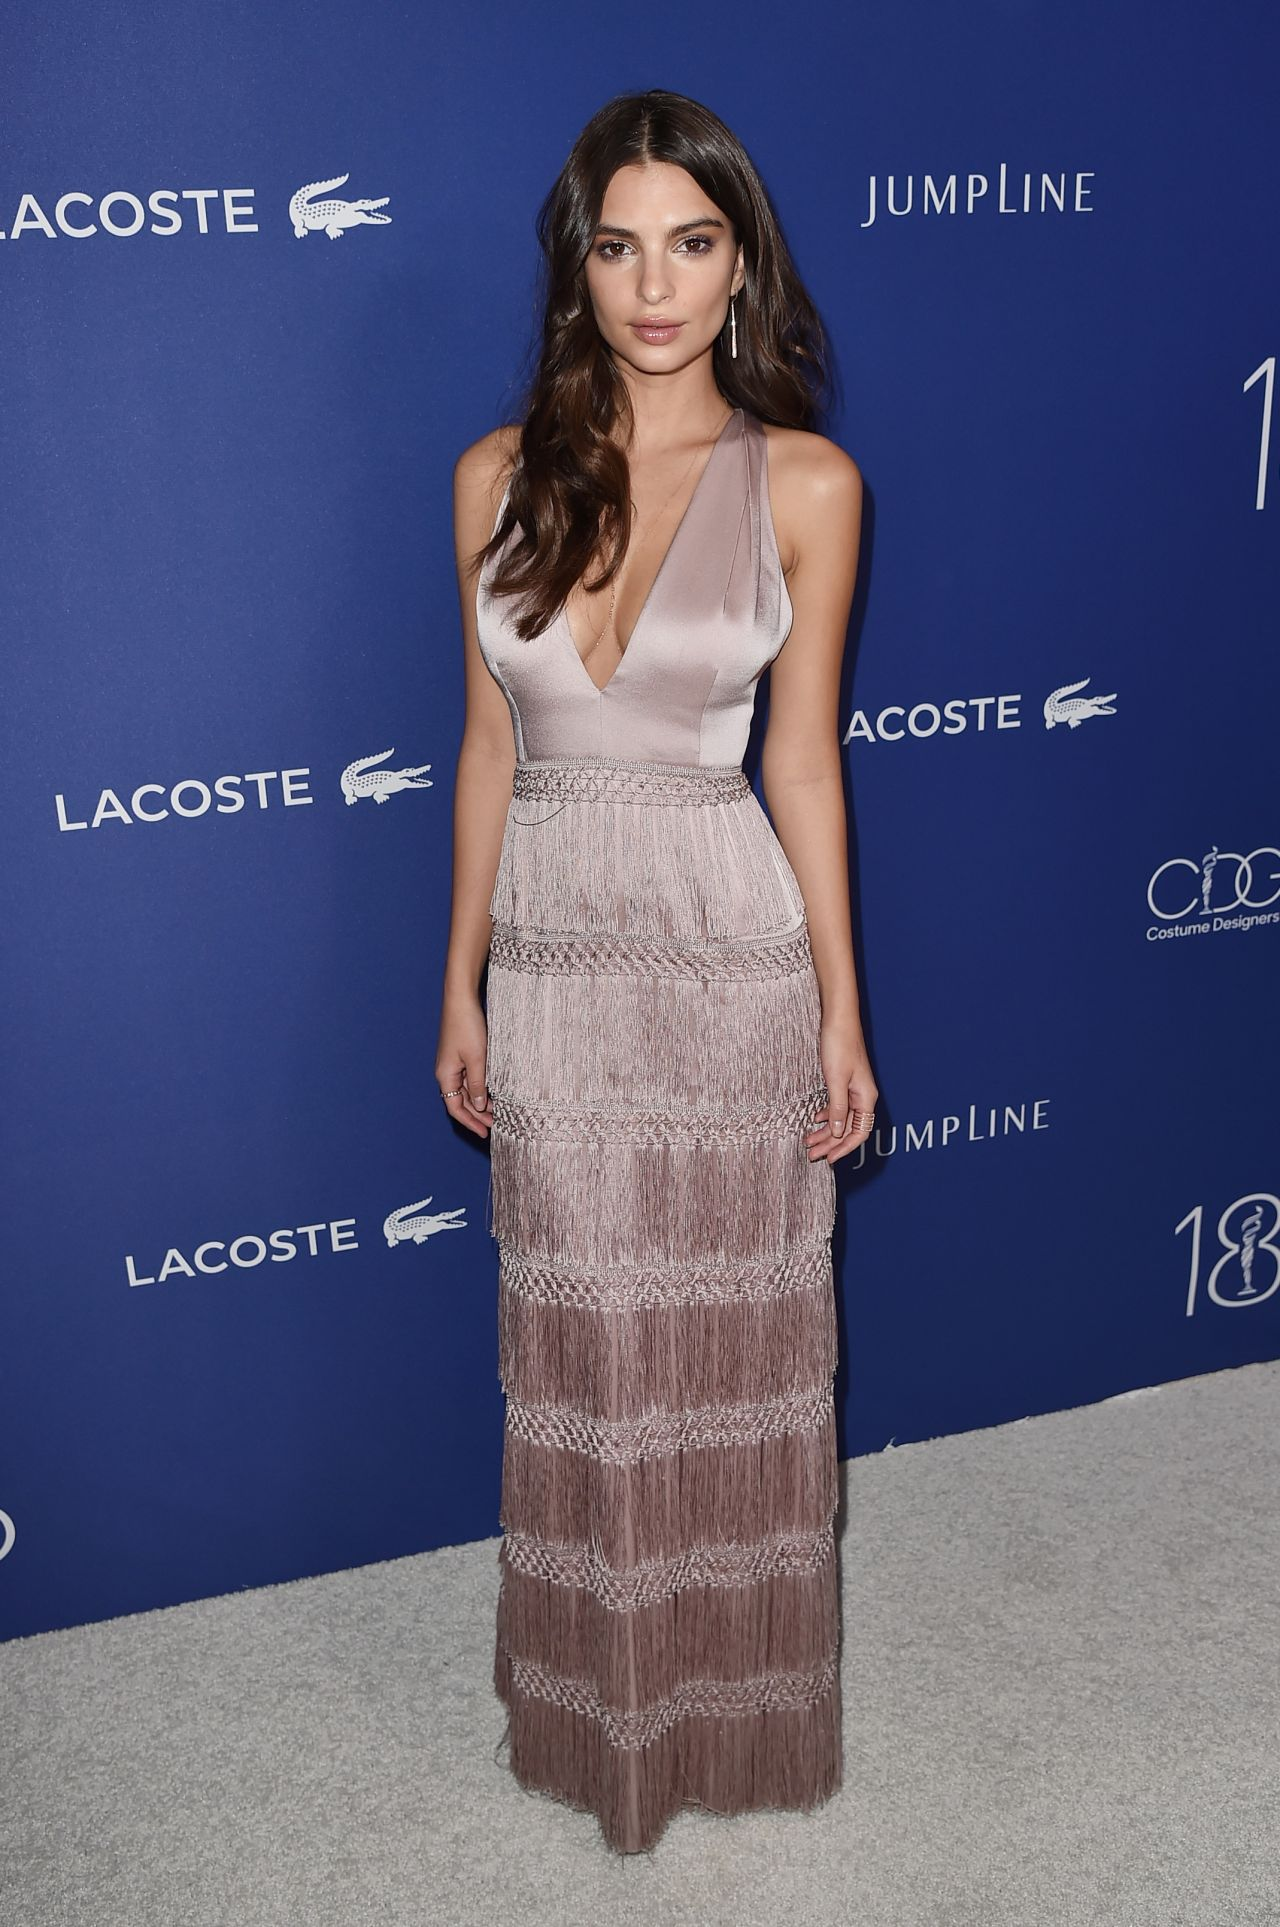 emily-ratajkowski-costume-designers-guild-awards-2016-with-lacoste-in-beverly-hills-4